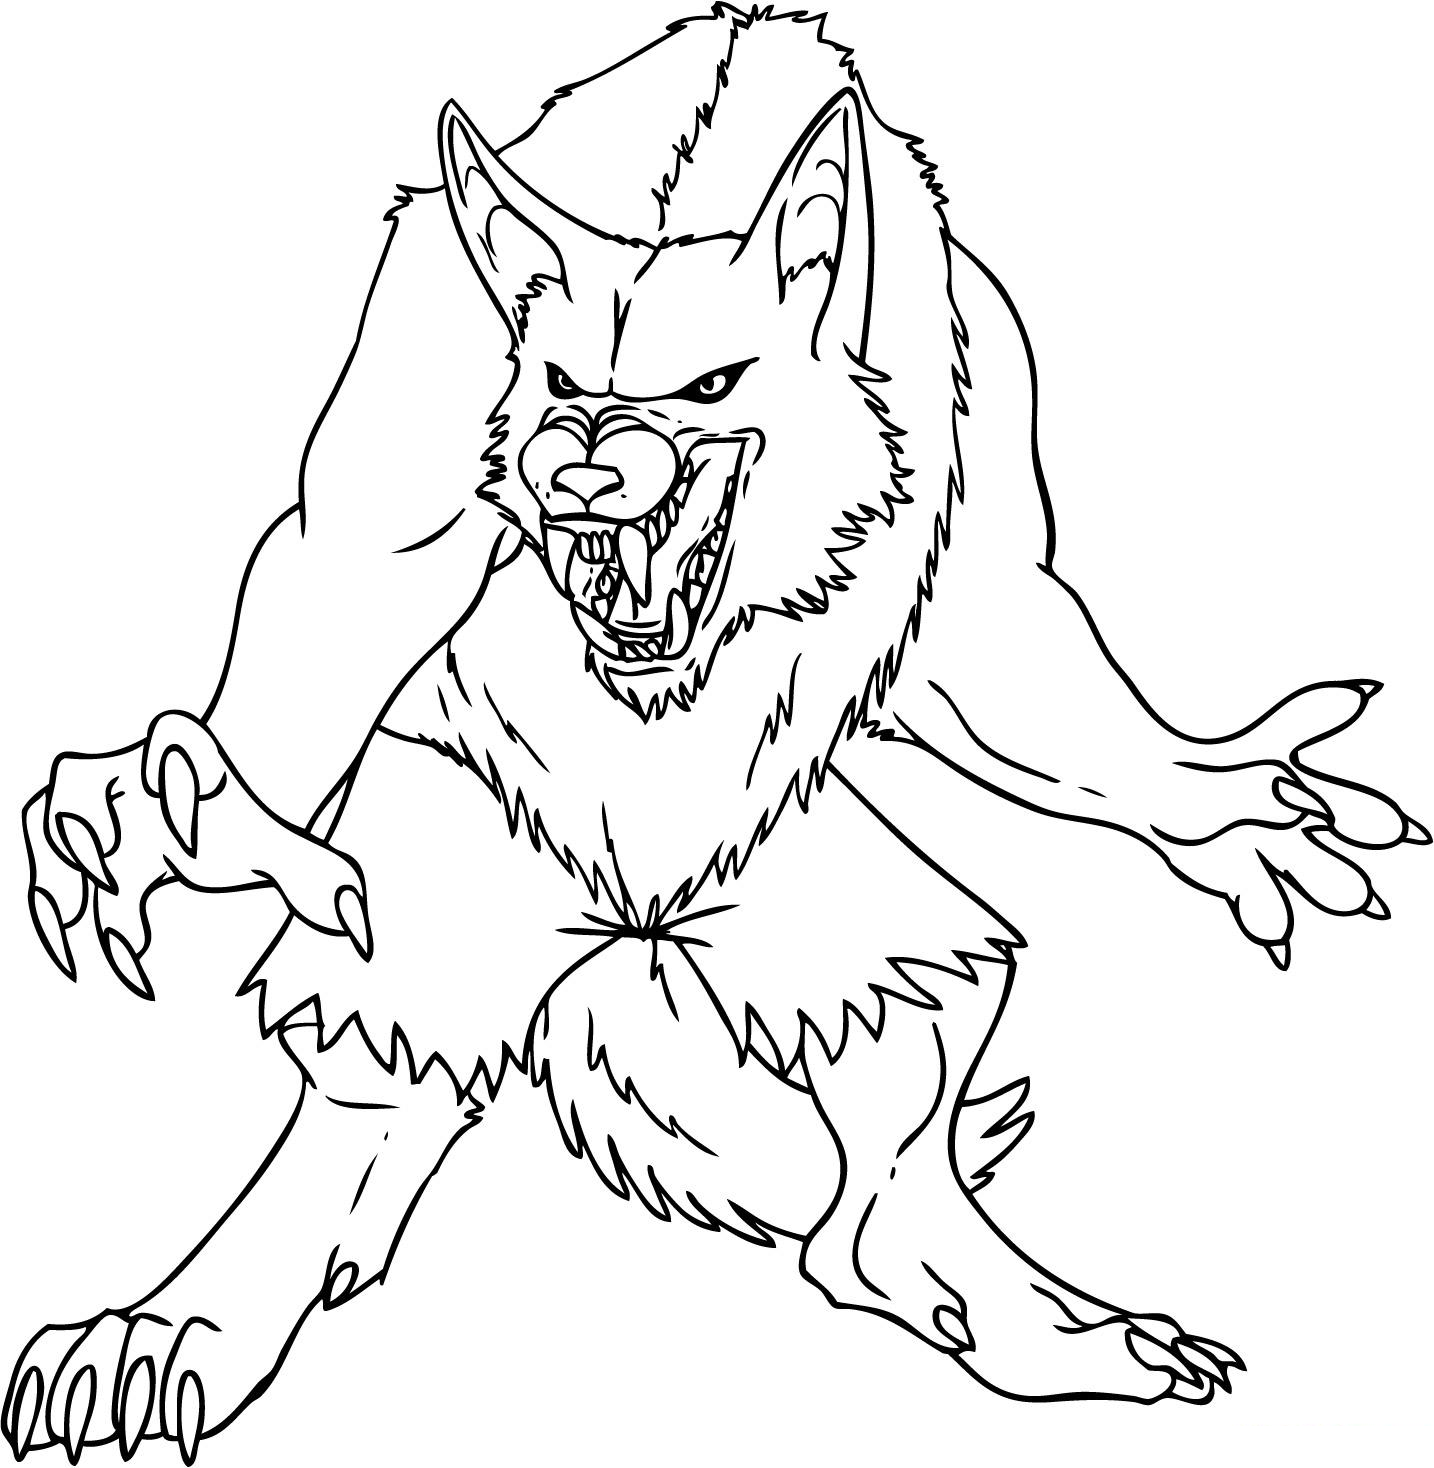 werewolf coloring pages kids coloring pages free printable - Halloween Werewolf Coloring Pages